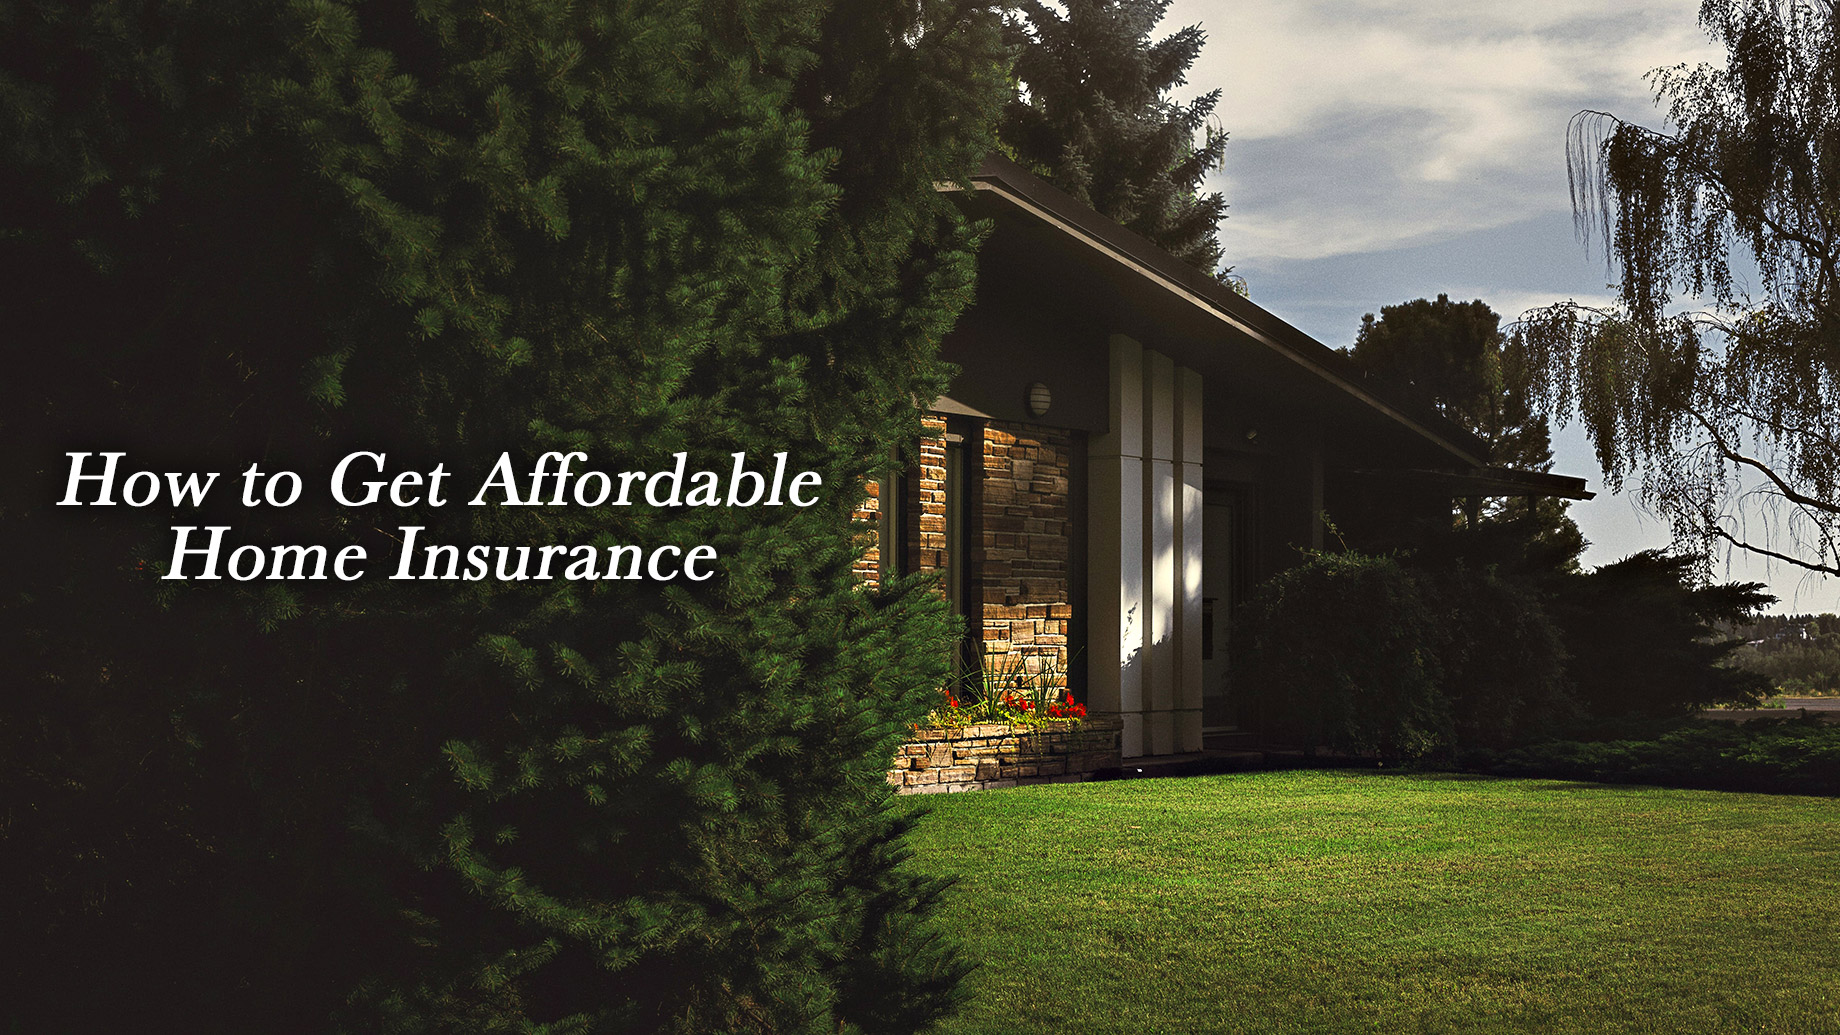 How to Get Affordable Home Insurance